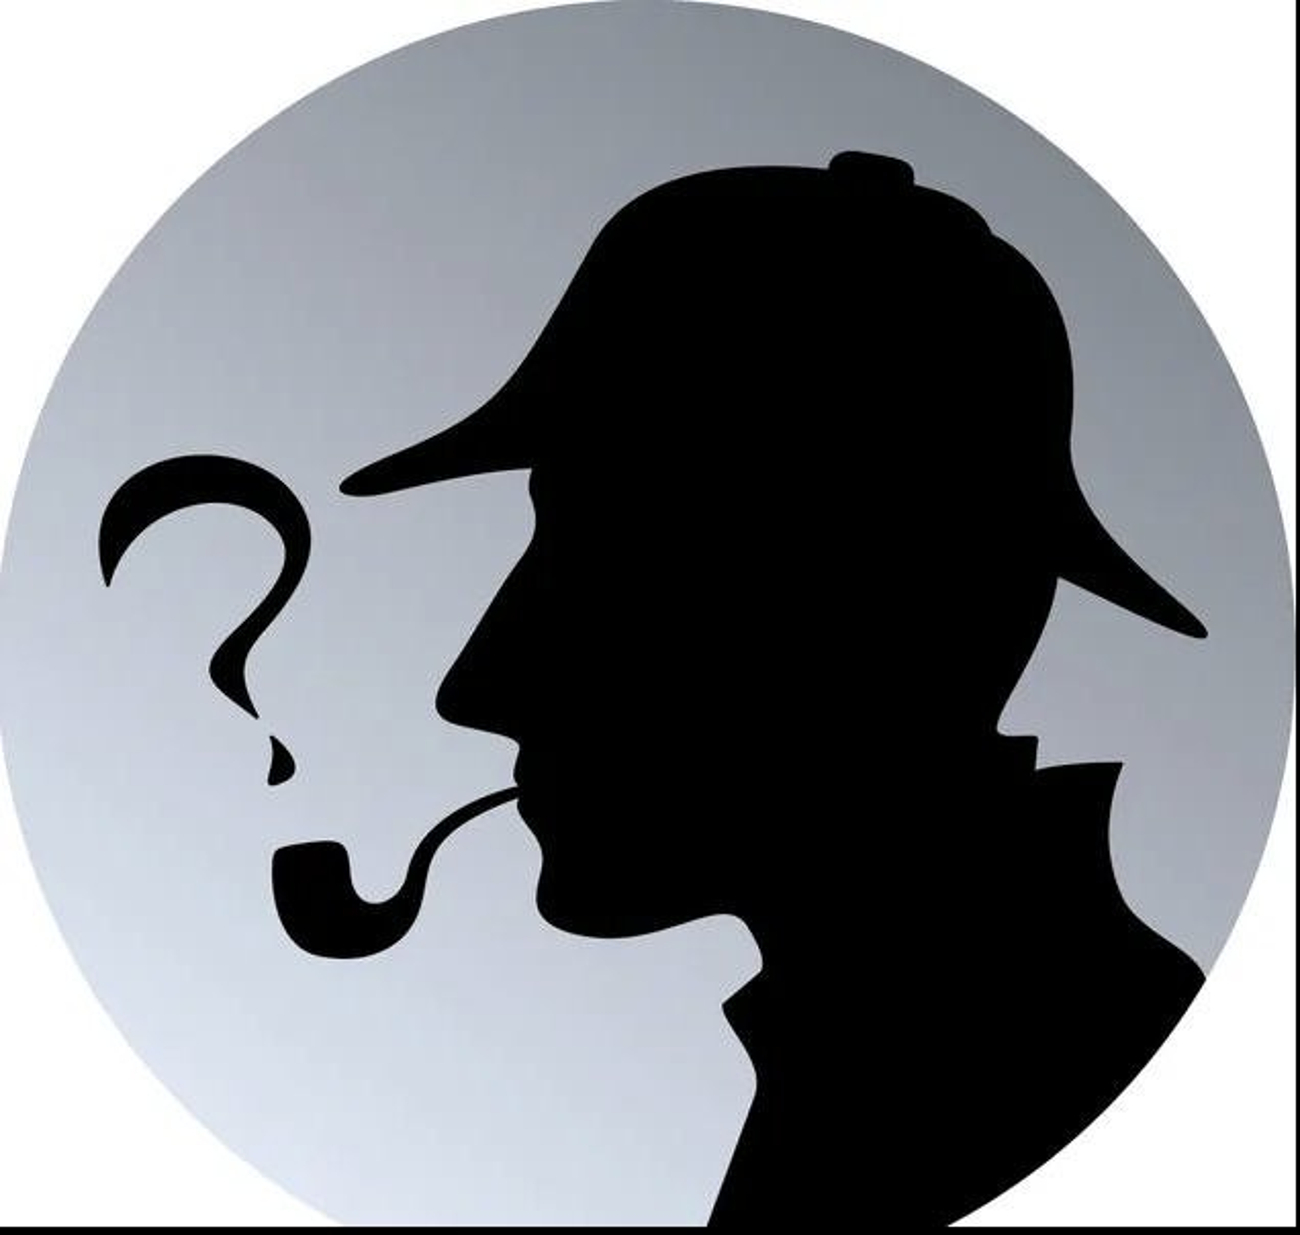 GUESS WHO: IMPROV MURDER MYSTERY SHOW to Surprise Audiences at Playhouse Boise